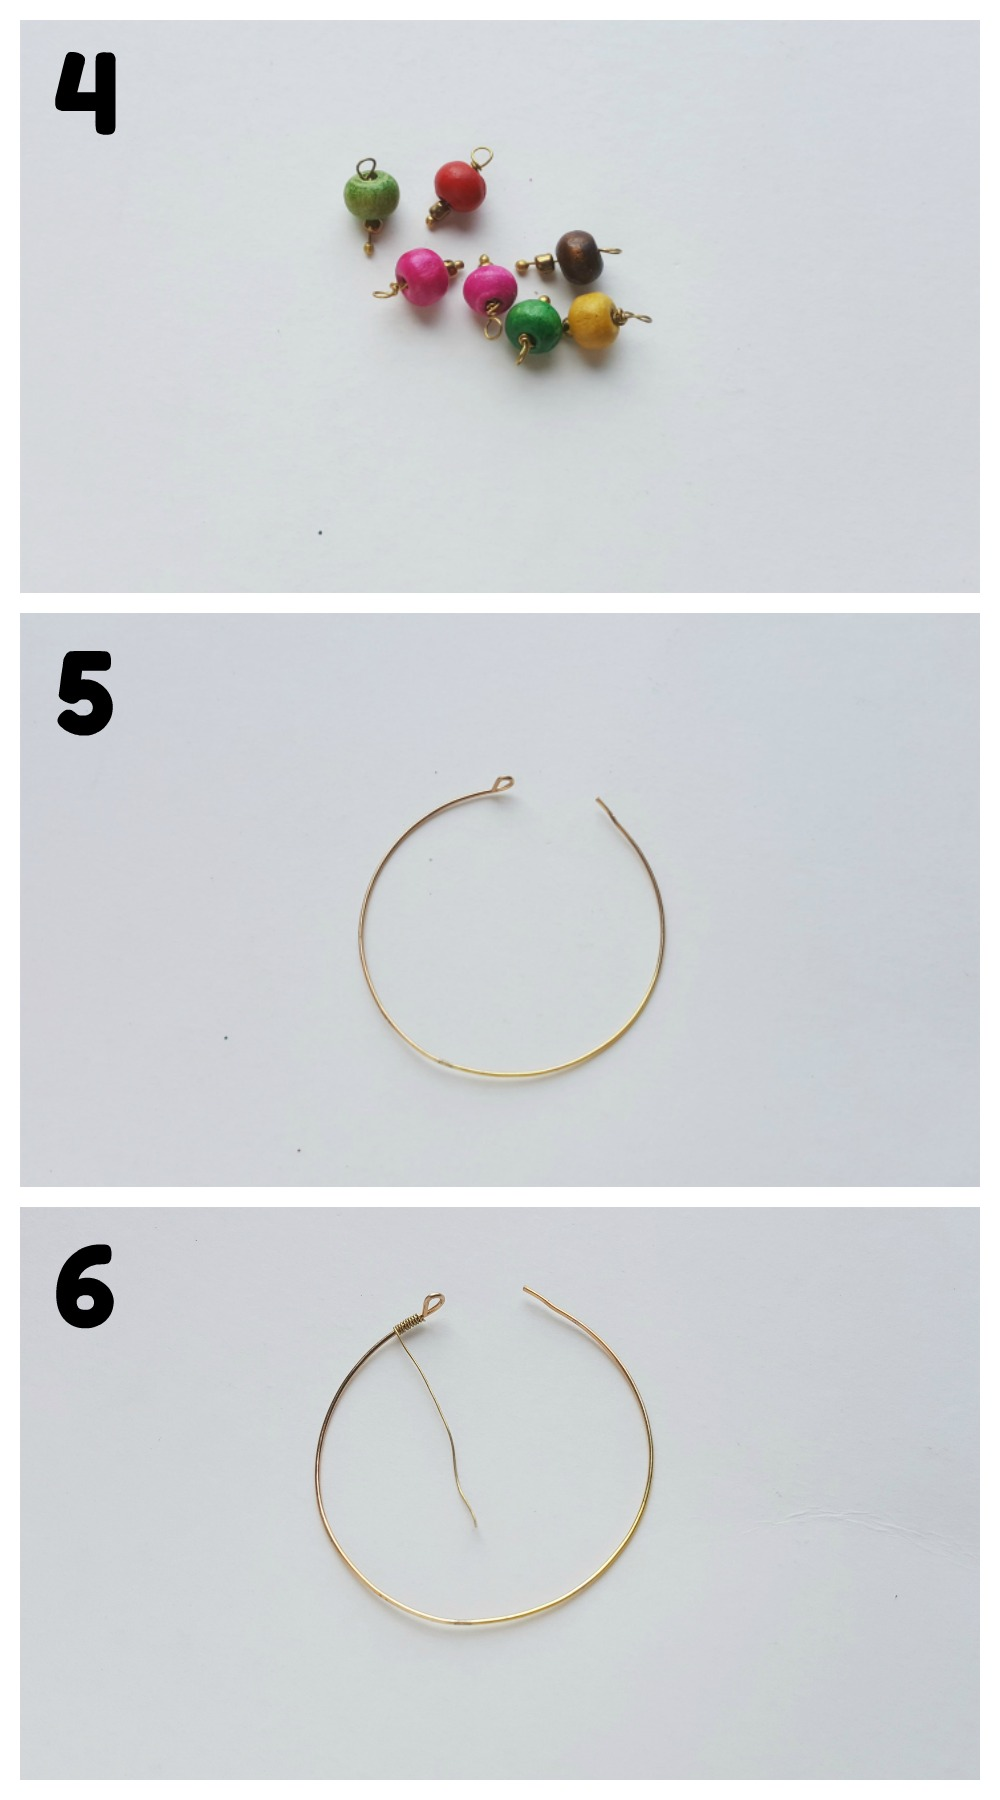 Beaded Hoop Earrings DIY Craft Steps 4-6